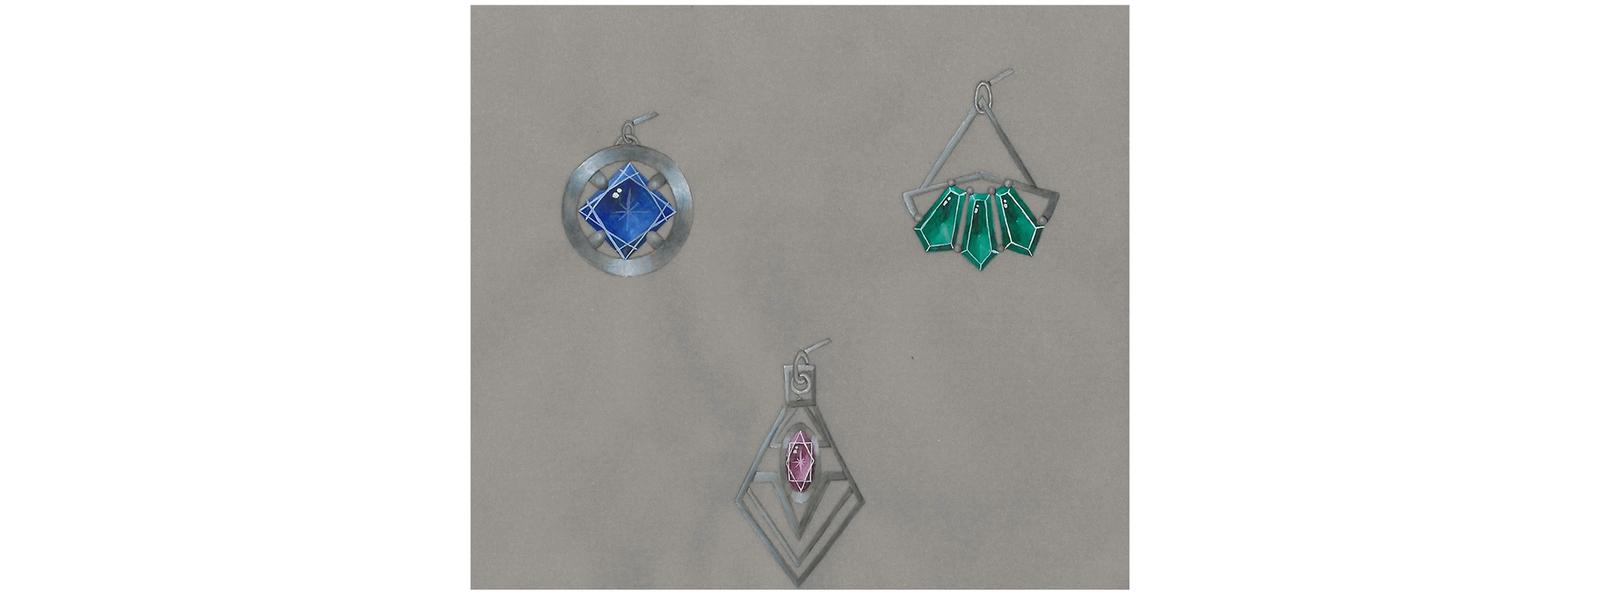 A series of earrings rendering inspired by the Art Deco Movement